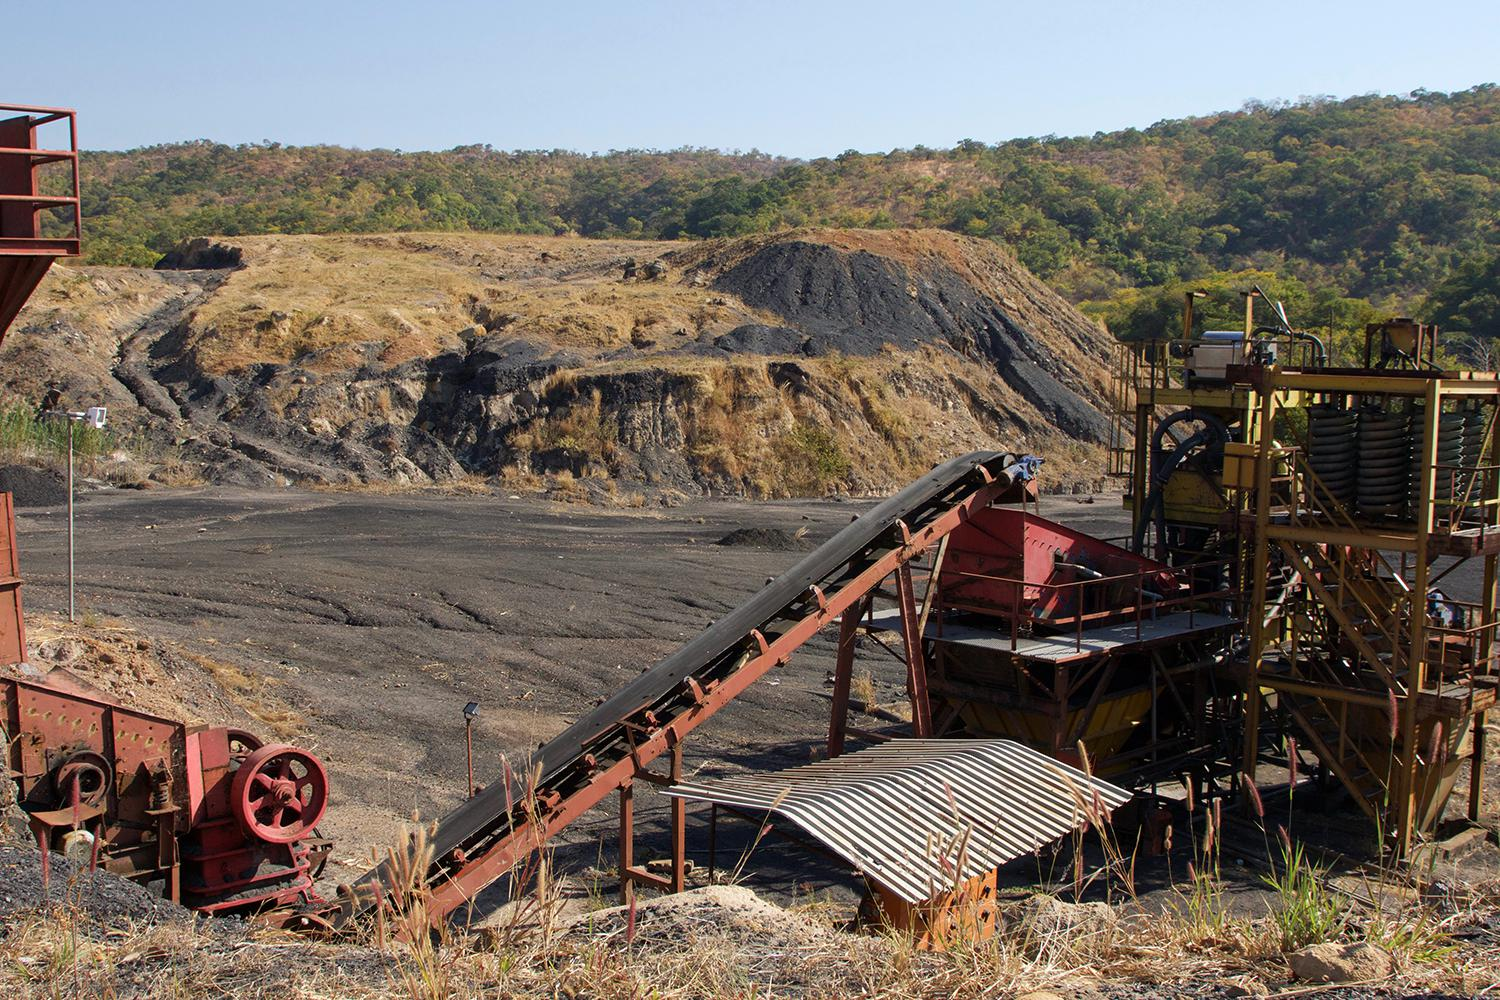 Mining machinery left behind at Eland coal mine at Mwabulambo after closure in 2015.